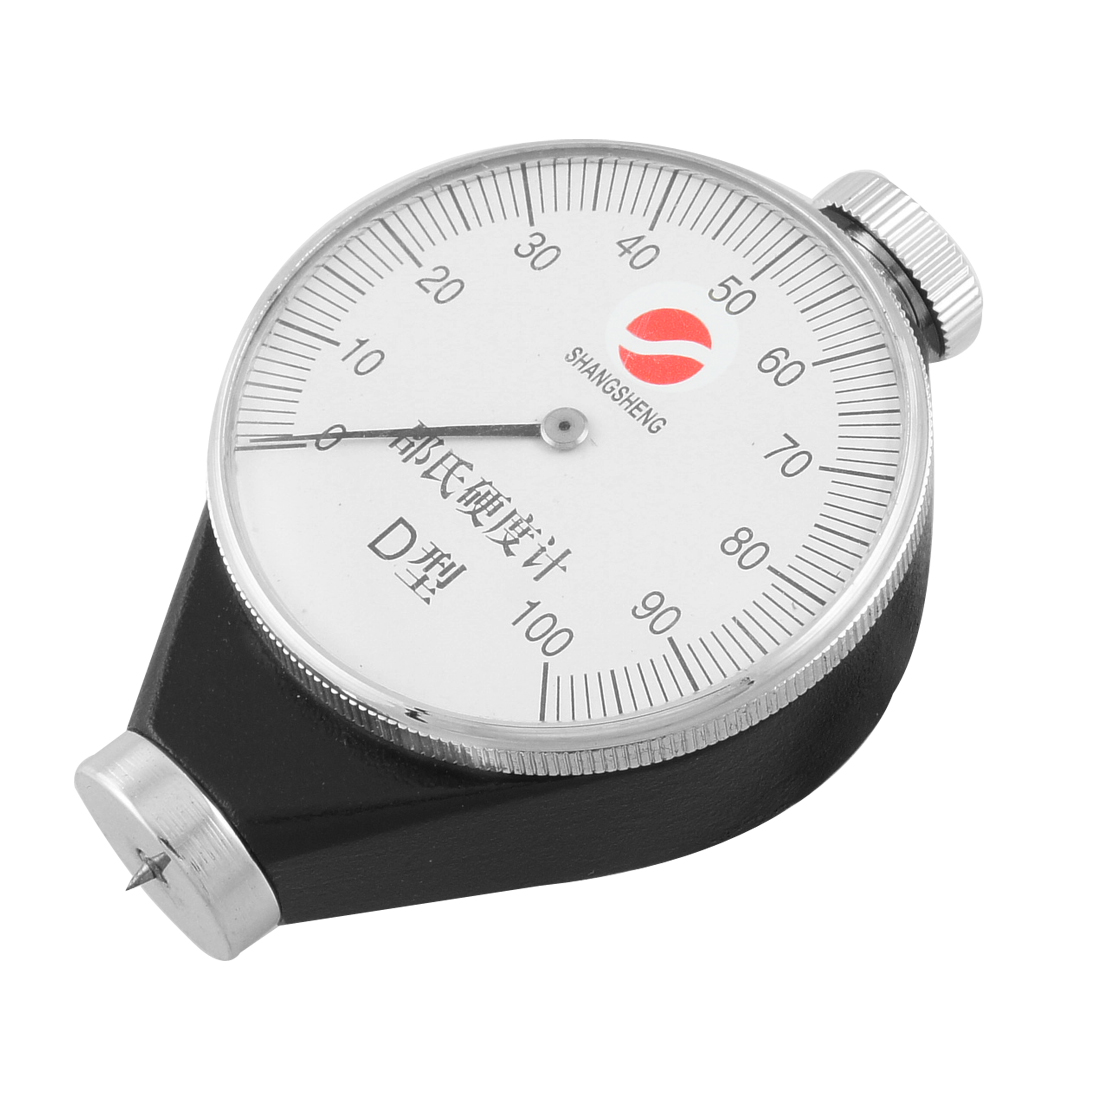 Shore Tire Durometer Type D 0-100mm Rubber Hardness Tester